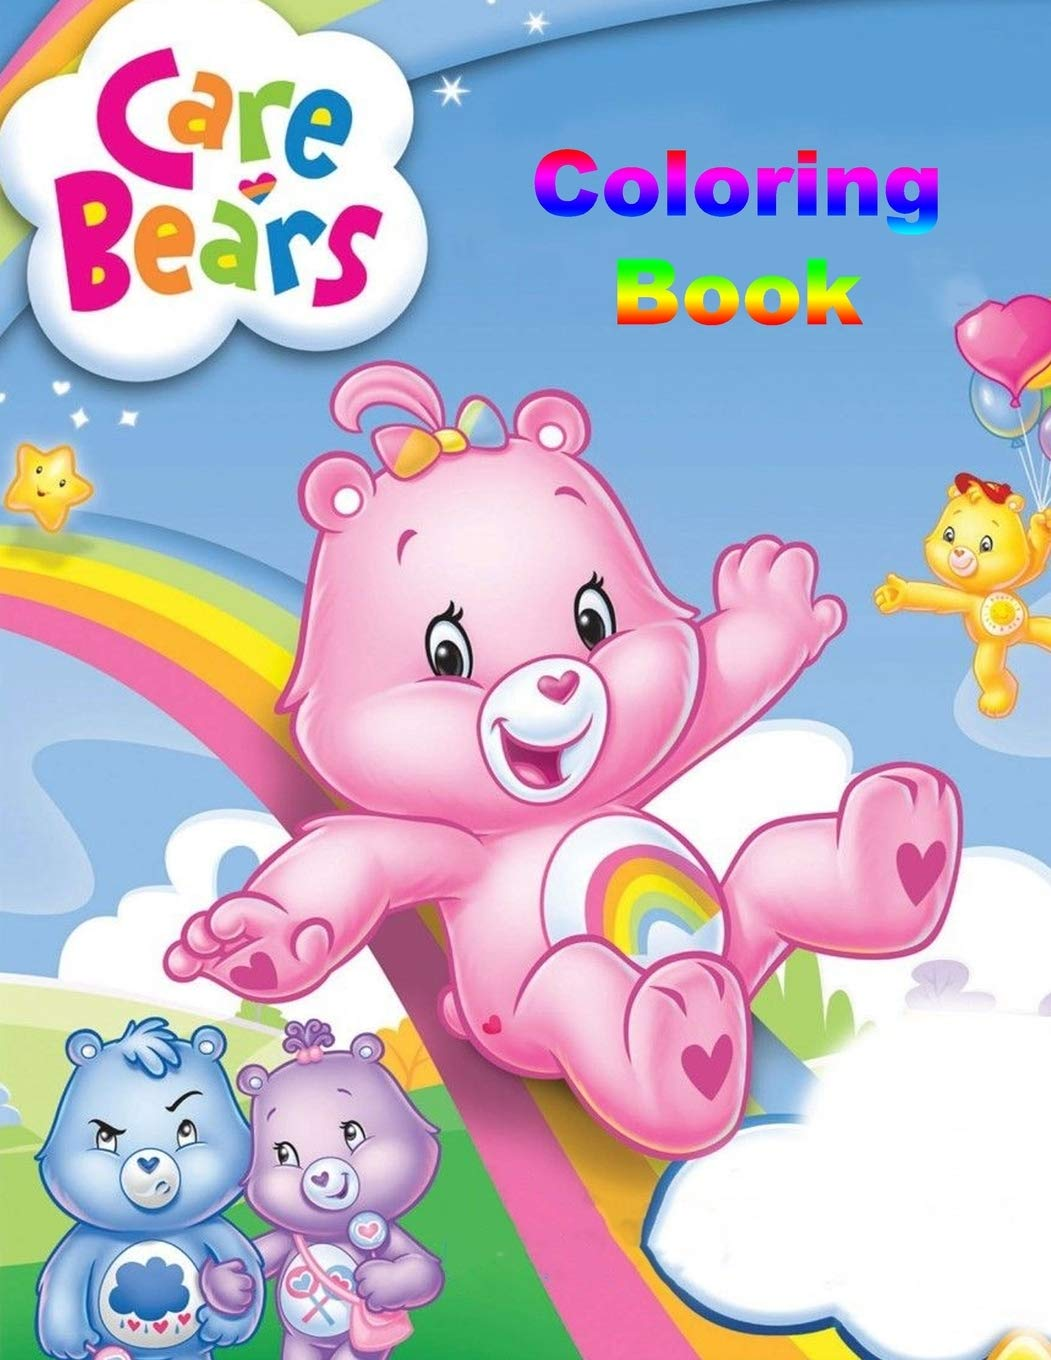 Buy Care Bears Coloring Book: Coloring Book For Kids And Adults